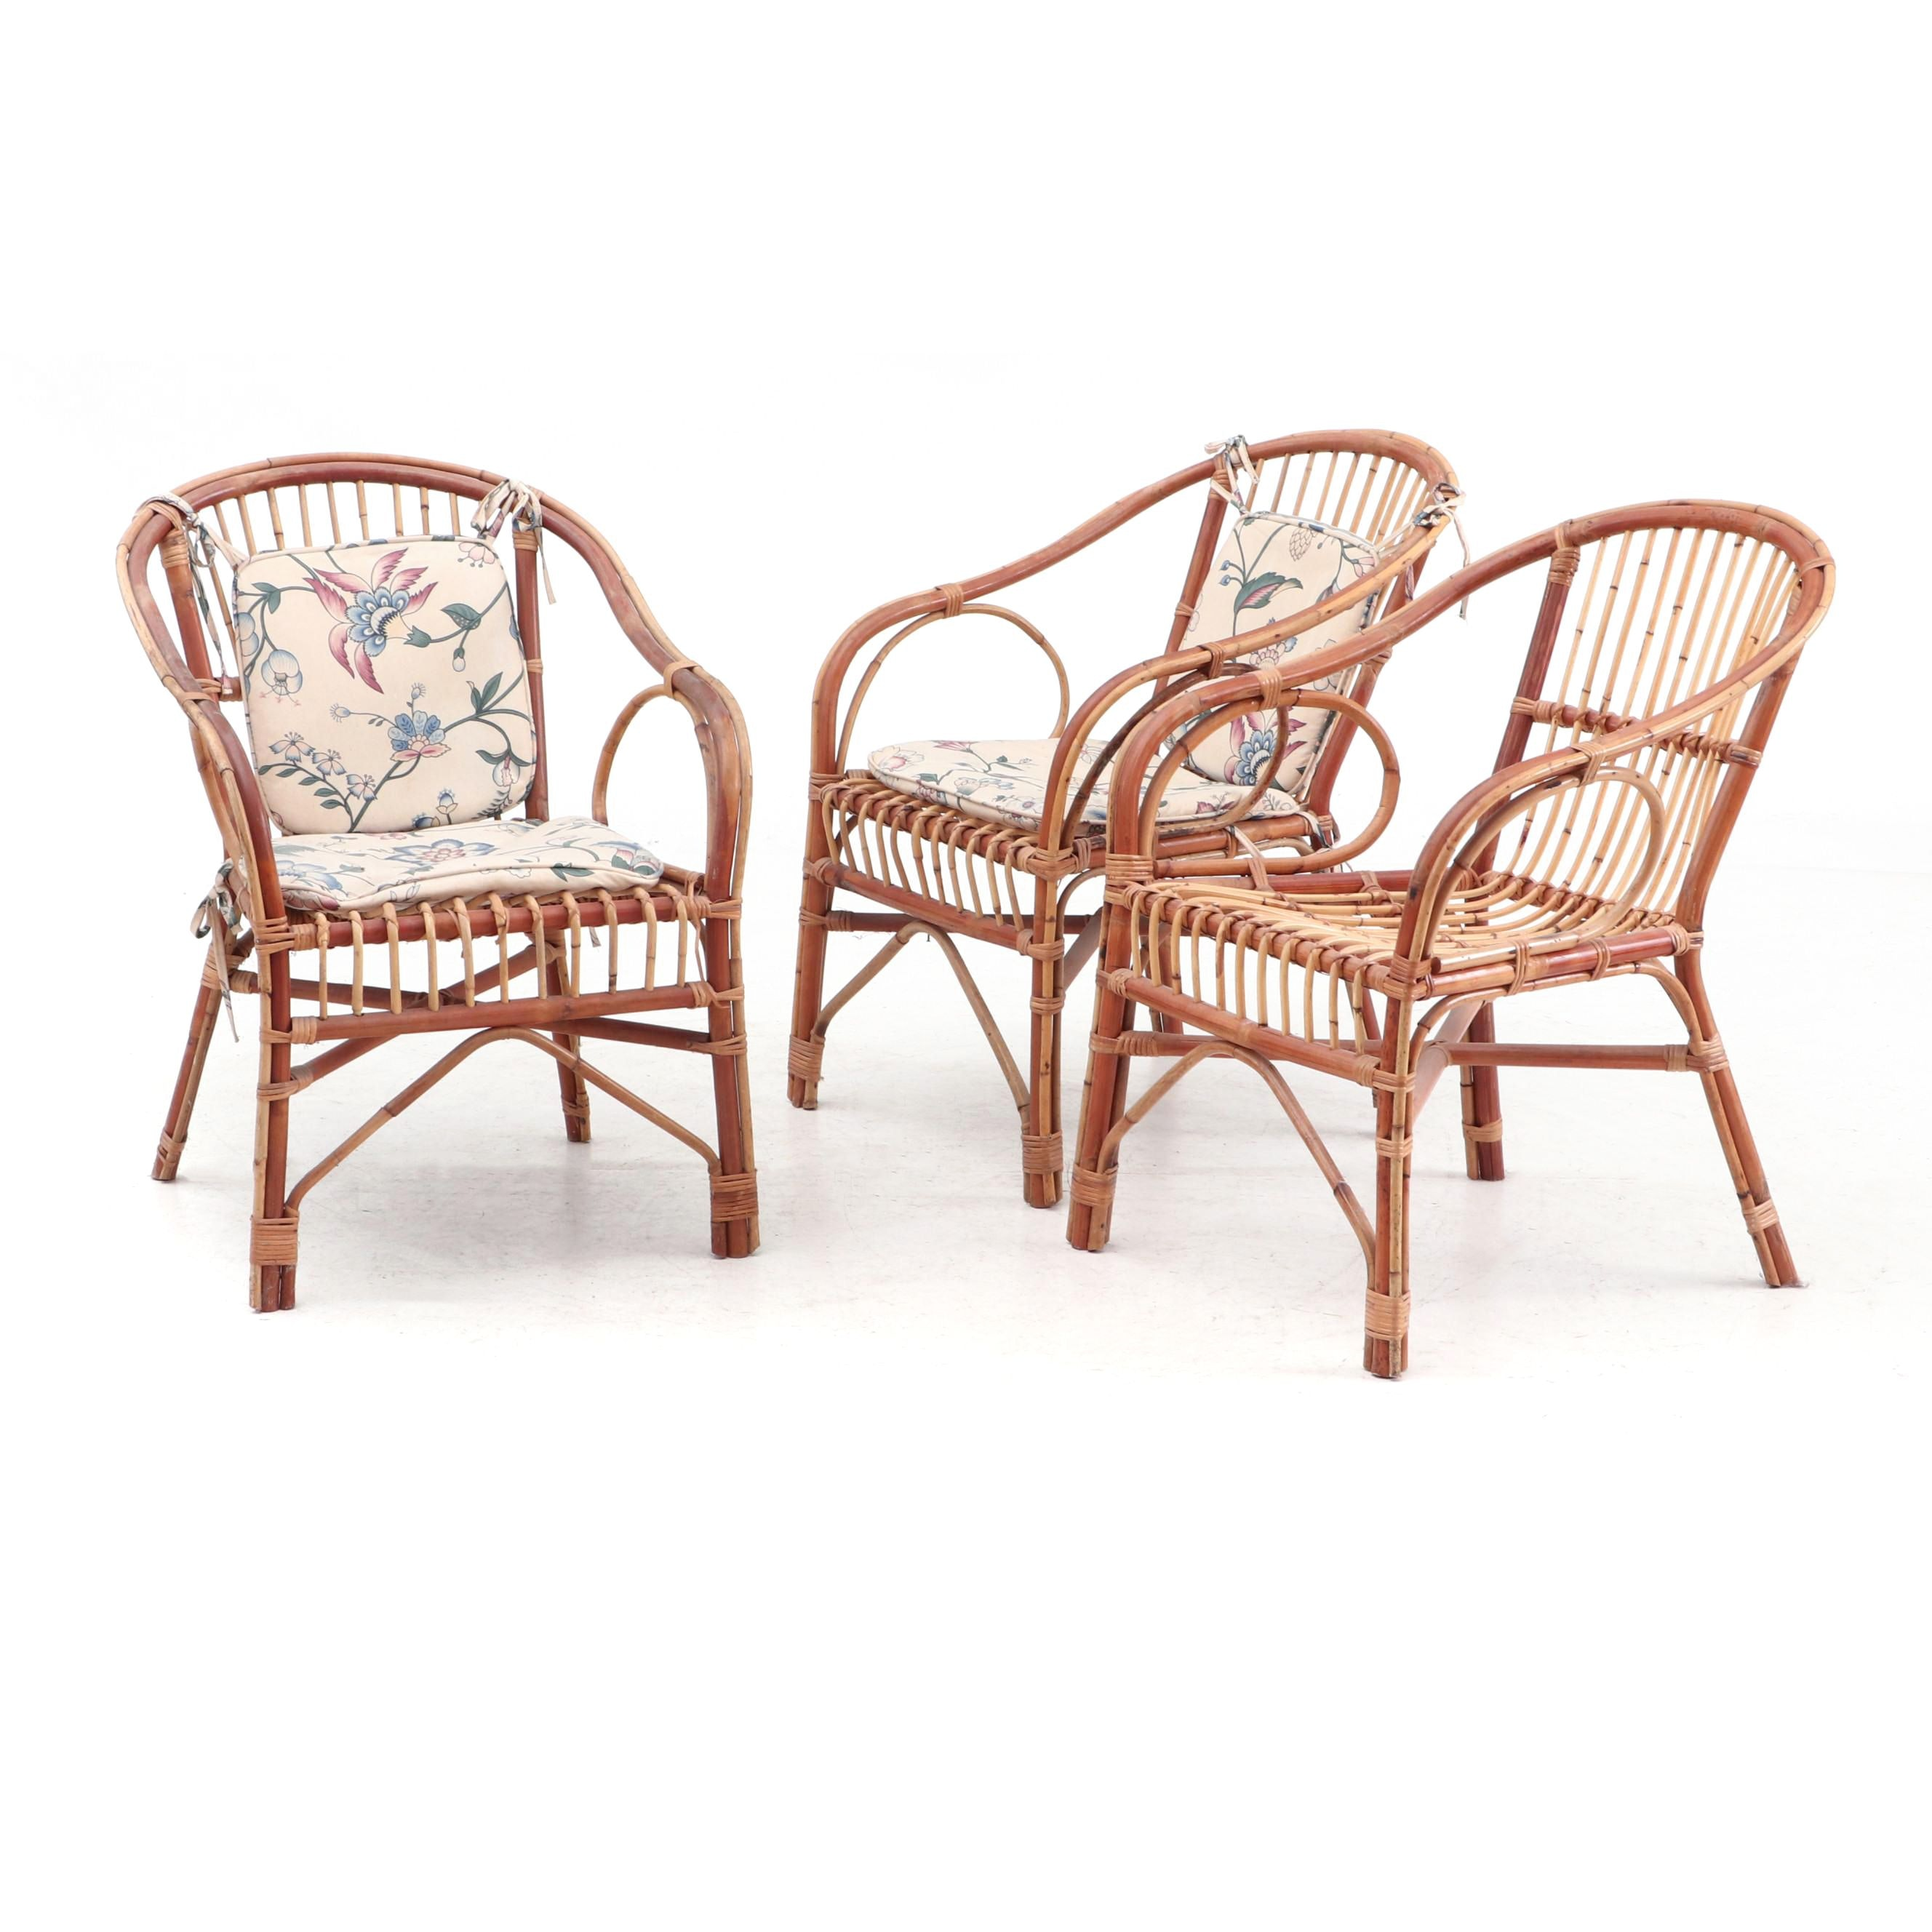 Bamboo and Rattan Arm Chairs with Cushions